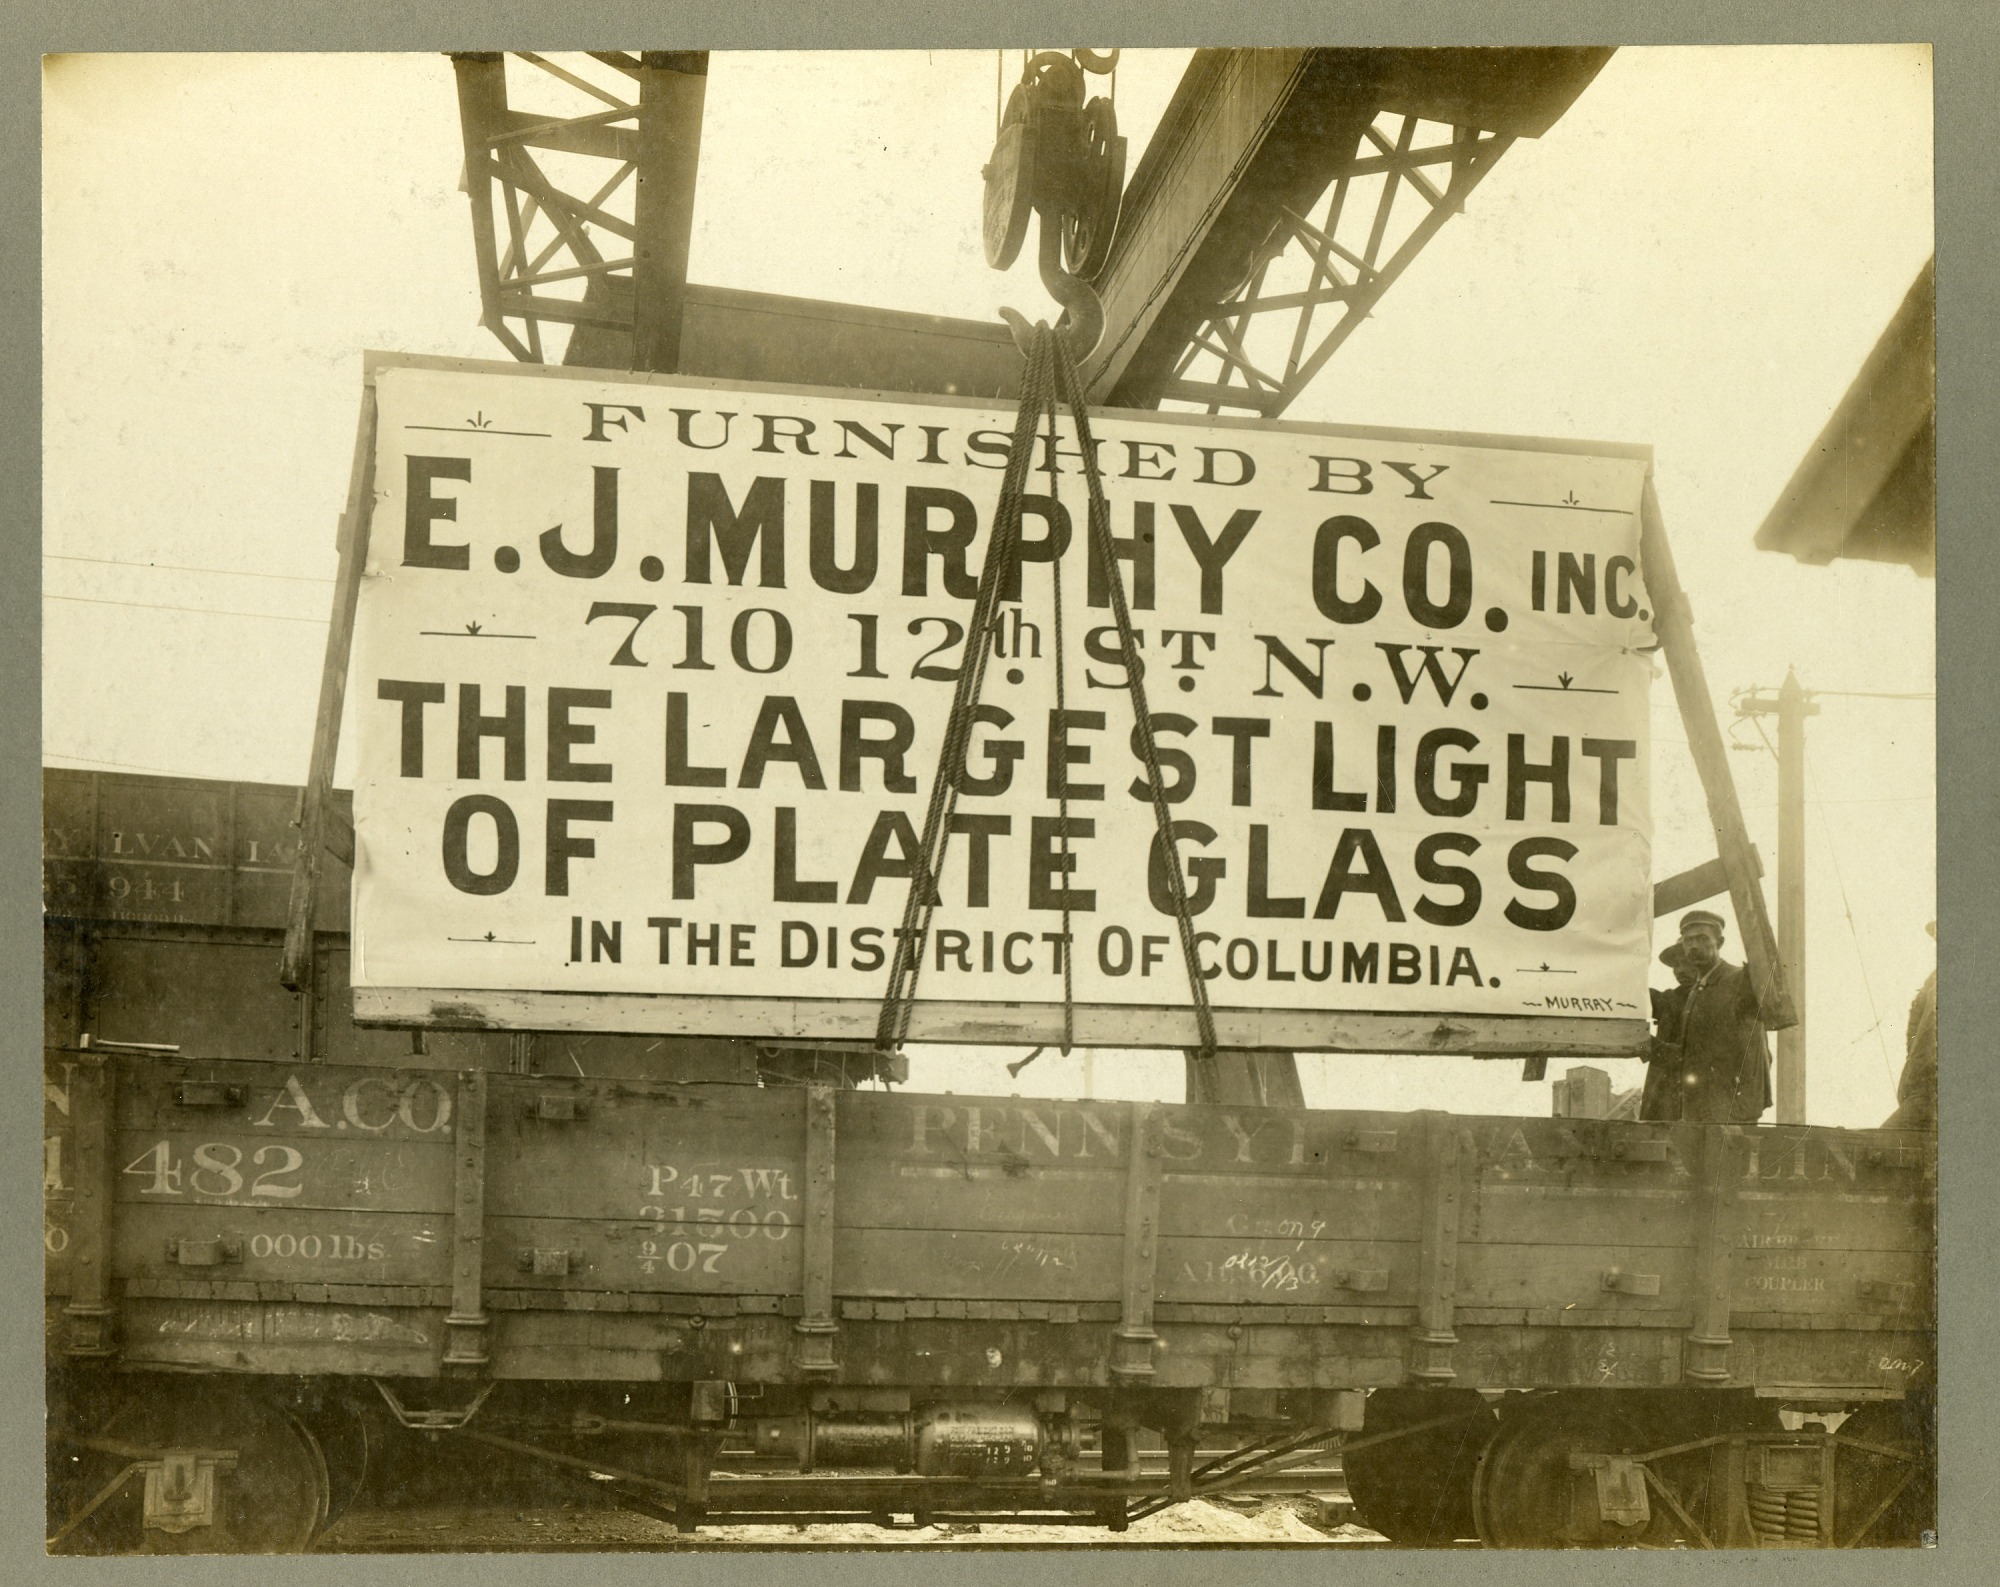 Preview of E. J. Murphy Co. Plate Glass and Laborers